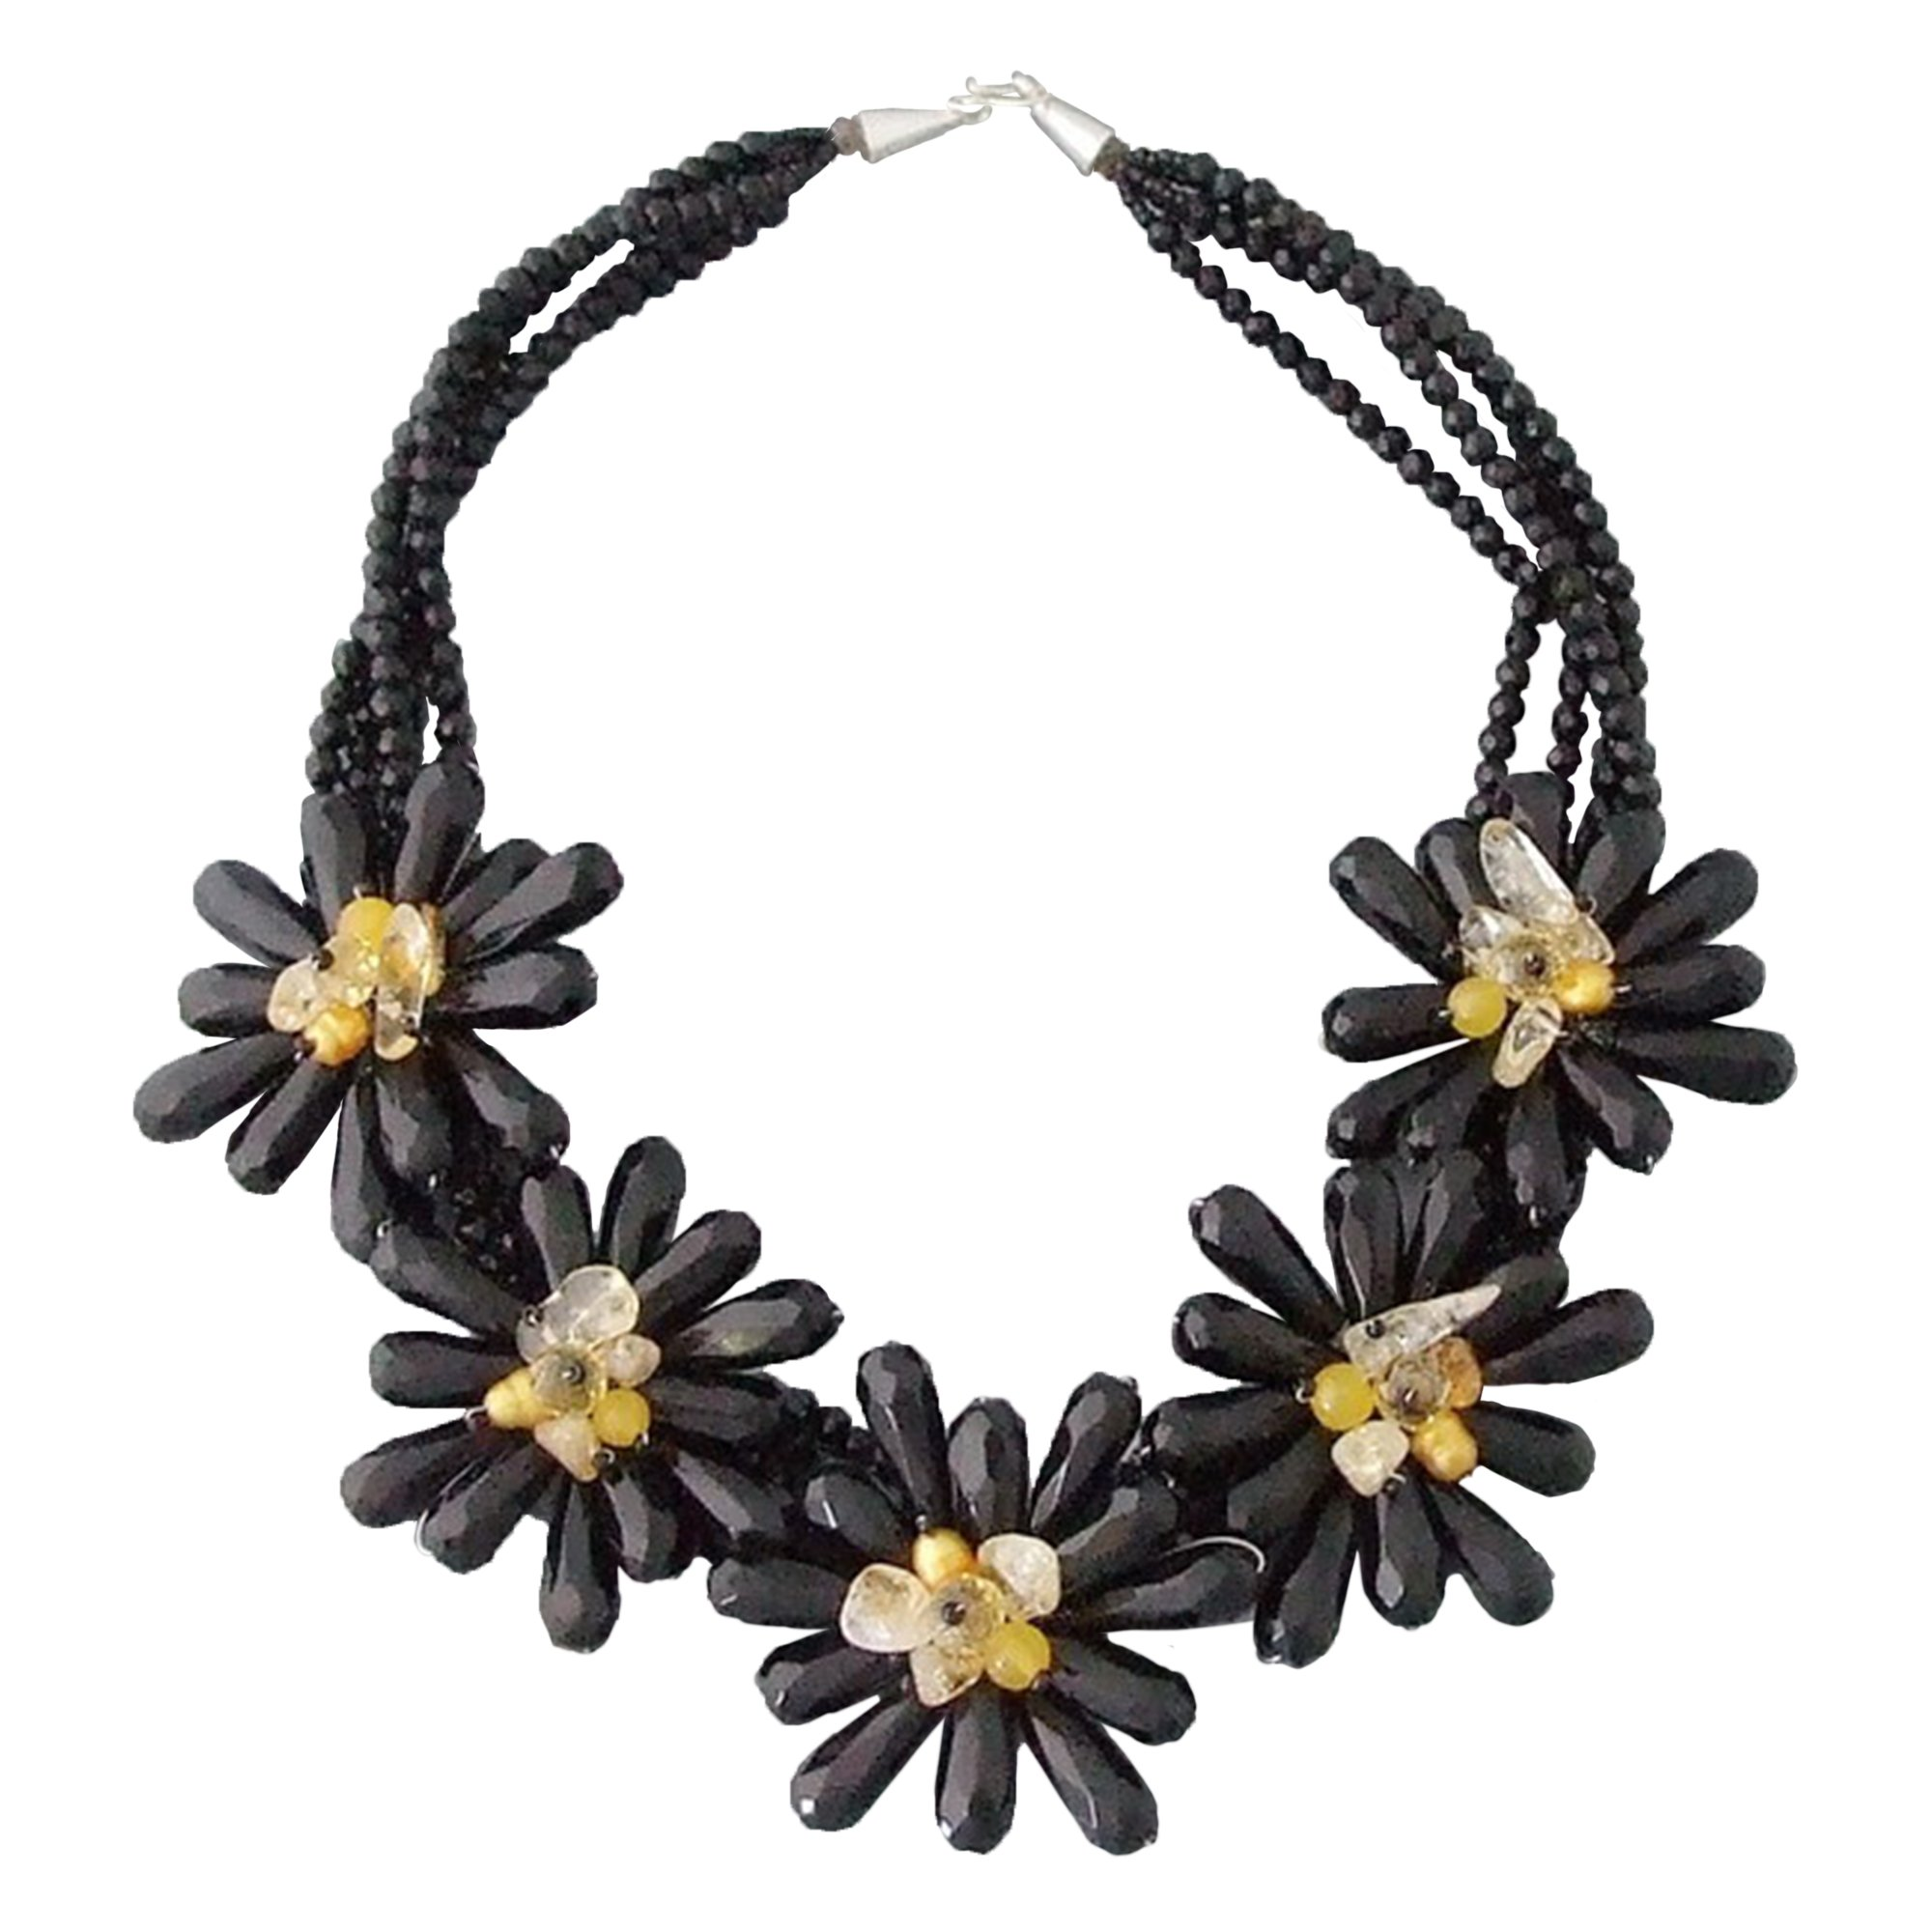 Simulated Black Onyx & Citrine & Cultured Freshwater Pearl Flower Collar Necklace